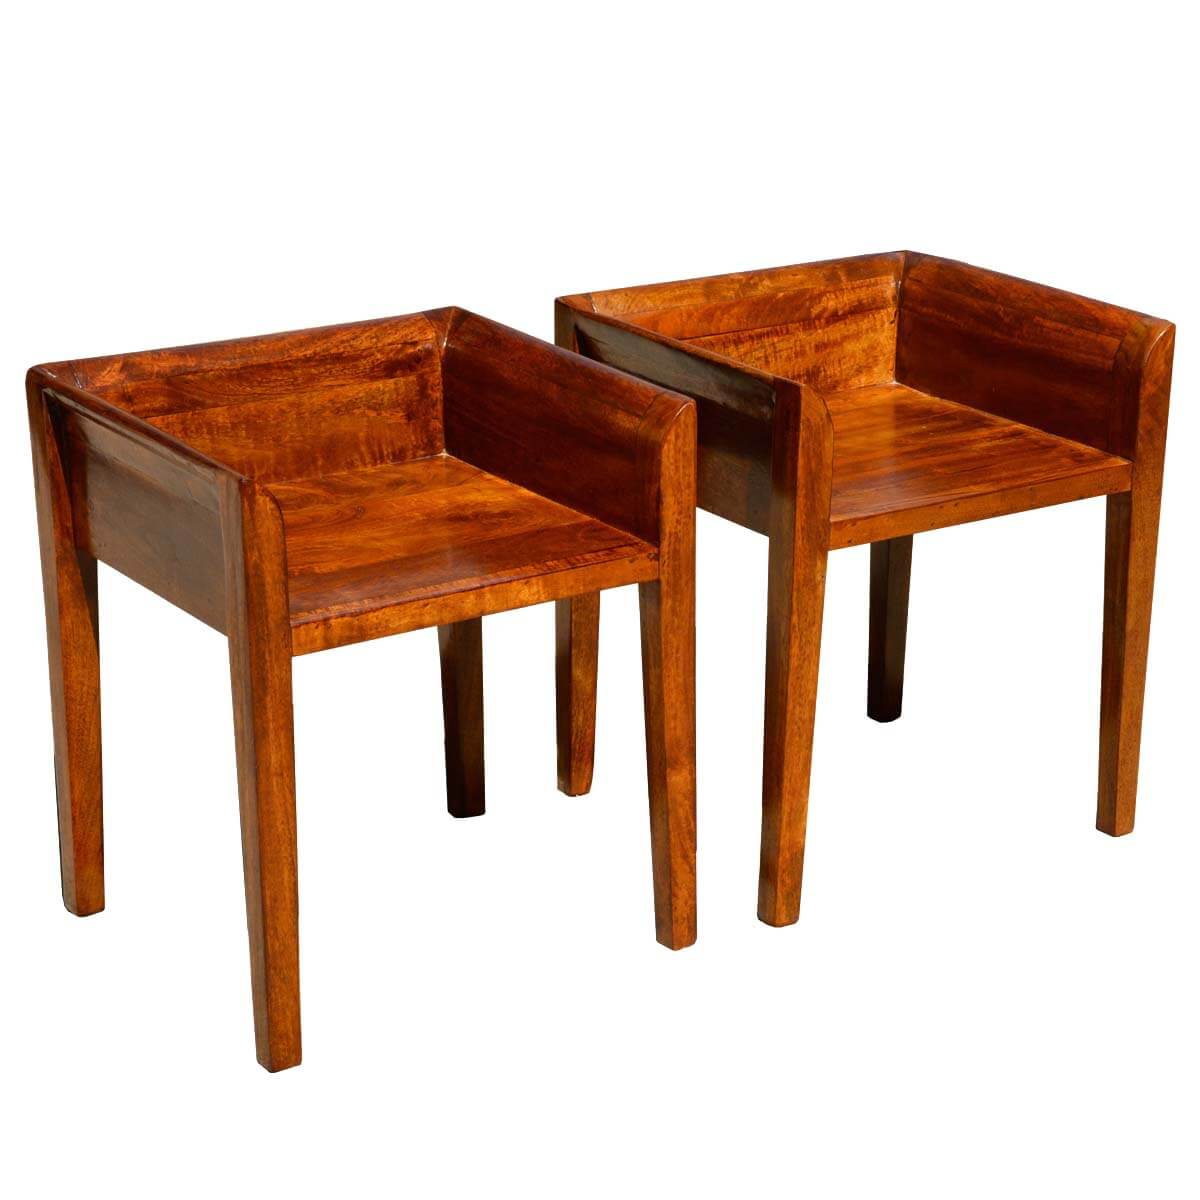 Low Back Chairs Set Of 2 Contemporary Solid Mango Wood Low Back Chairs